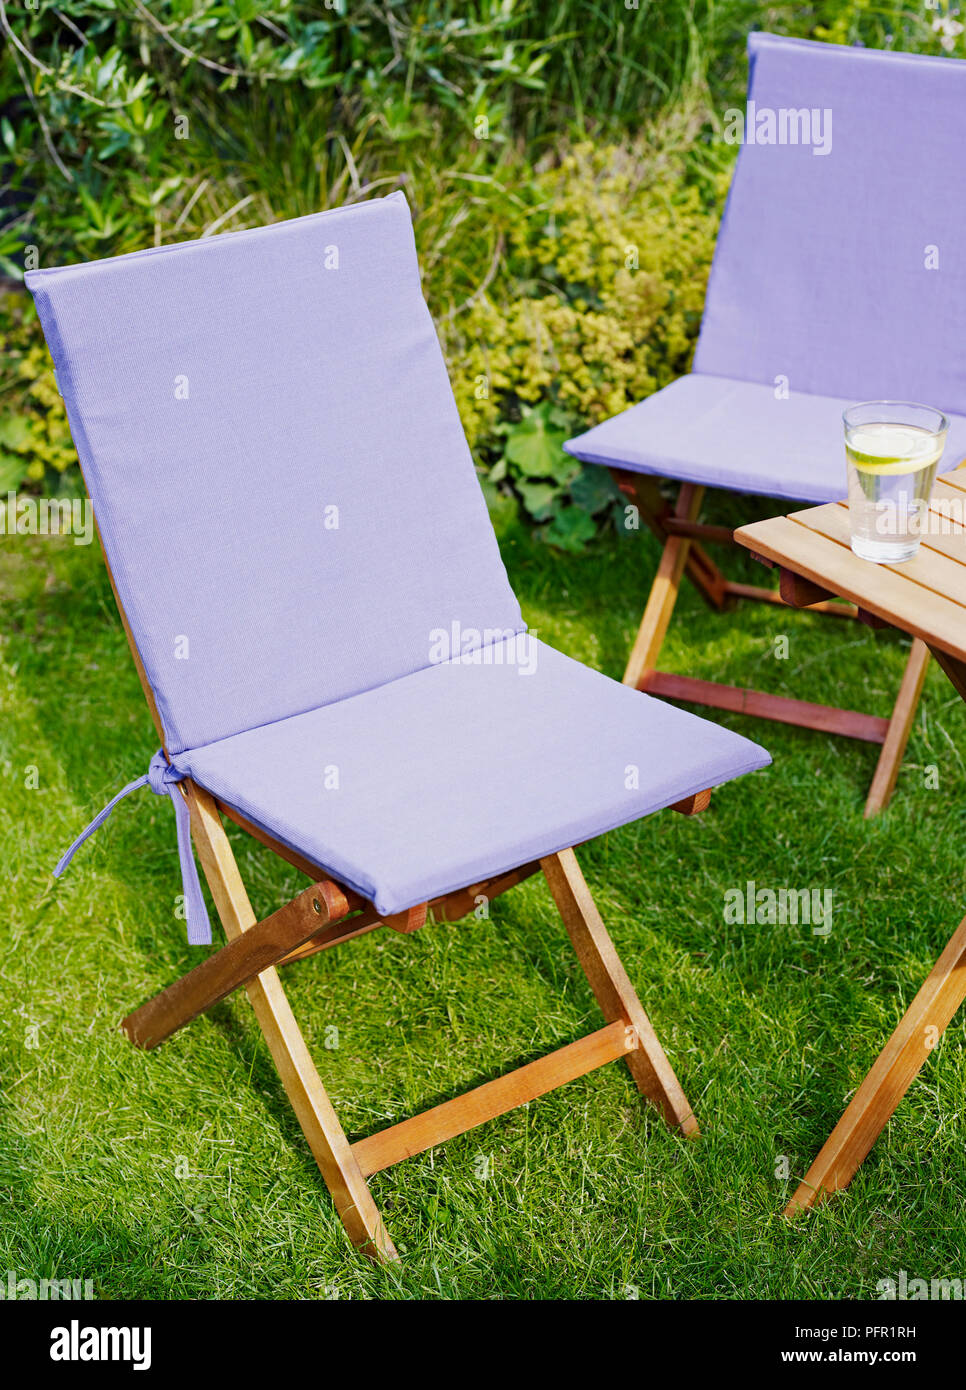 Pale purple canvas seat covers on wooden garden chairs next to